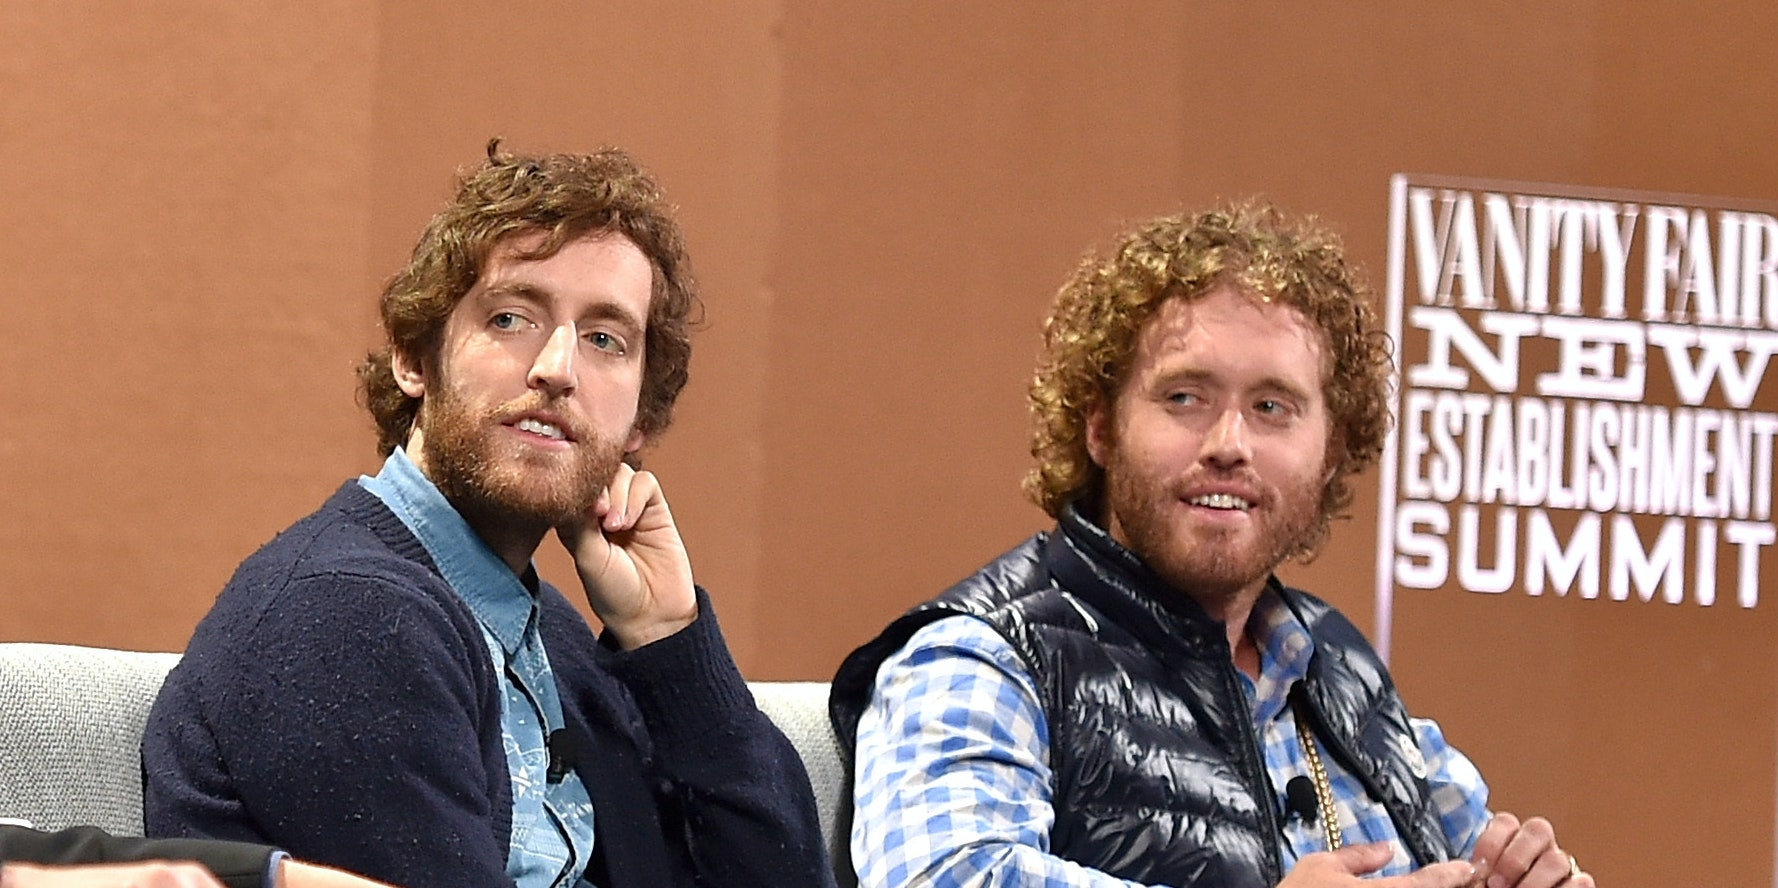 SAN FRANCISCO, CA - OCTOBER 06:  (L-R) Co-creator Mike Judge, Executive Producer Alec Berg, actors Thomas Middleditch and T. J. Miller speak onstage during 'Silicon Valley Vs. Silicon Valley—Inside HBO's Hit Show' at the Vanity Fair New Establishment Summit at Yerba Buena Center for the Arts on October 6, 2015 in San Francisco, California.  (Photo by Mike Windle/Getty Images for Vanity Fair)